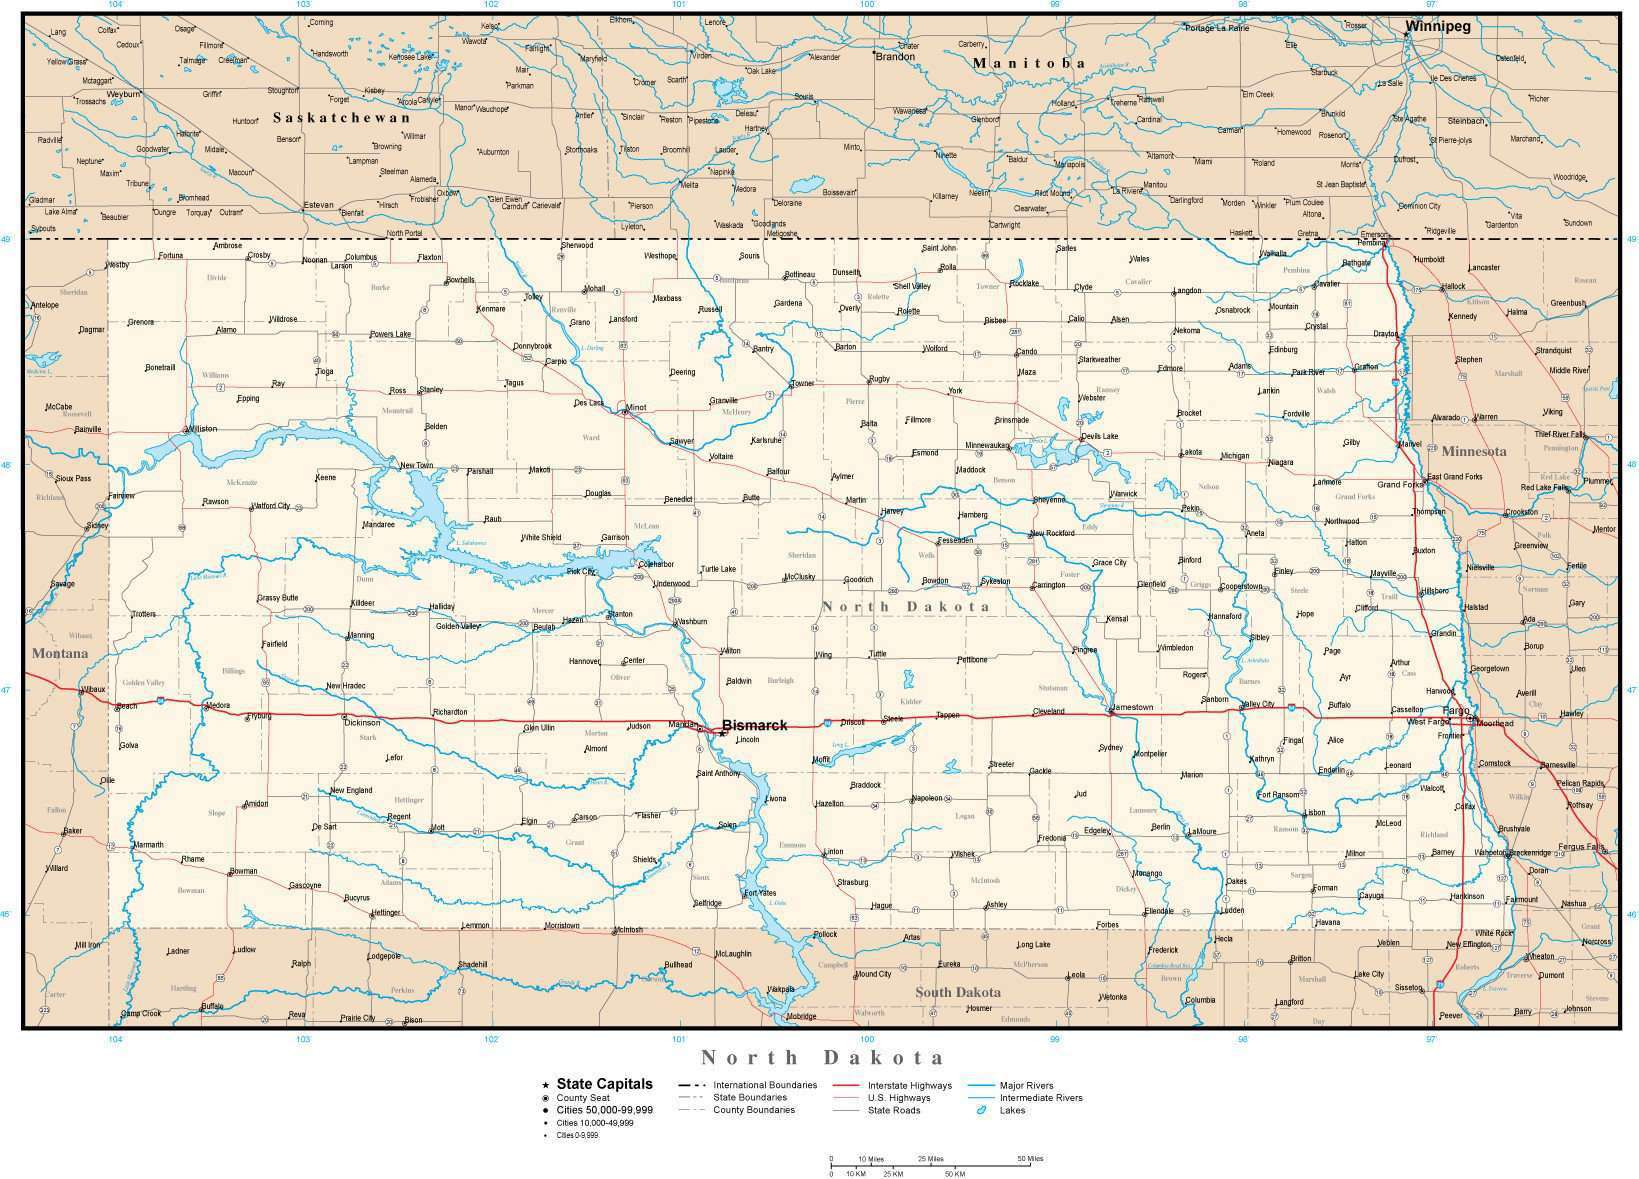 North Dakota Map with Capital, County Boundaries, Cities, Roads, and Water  Features